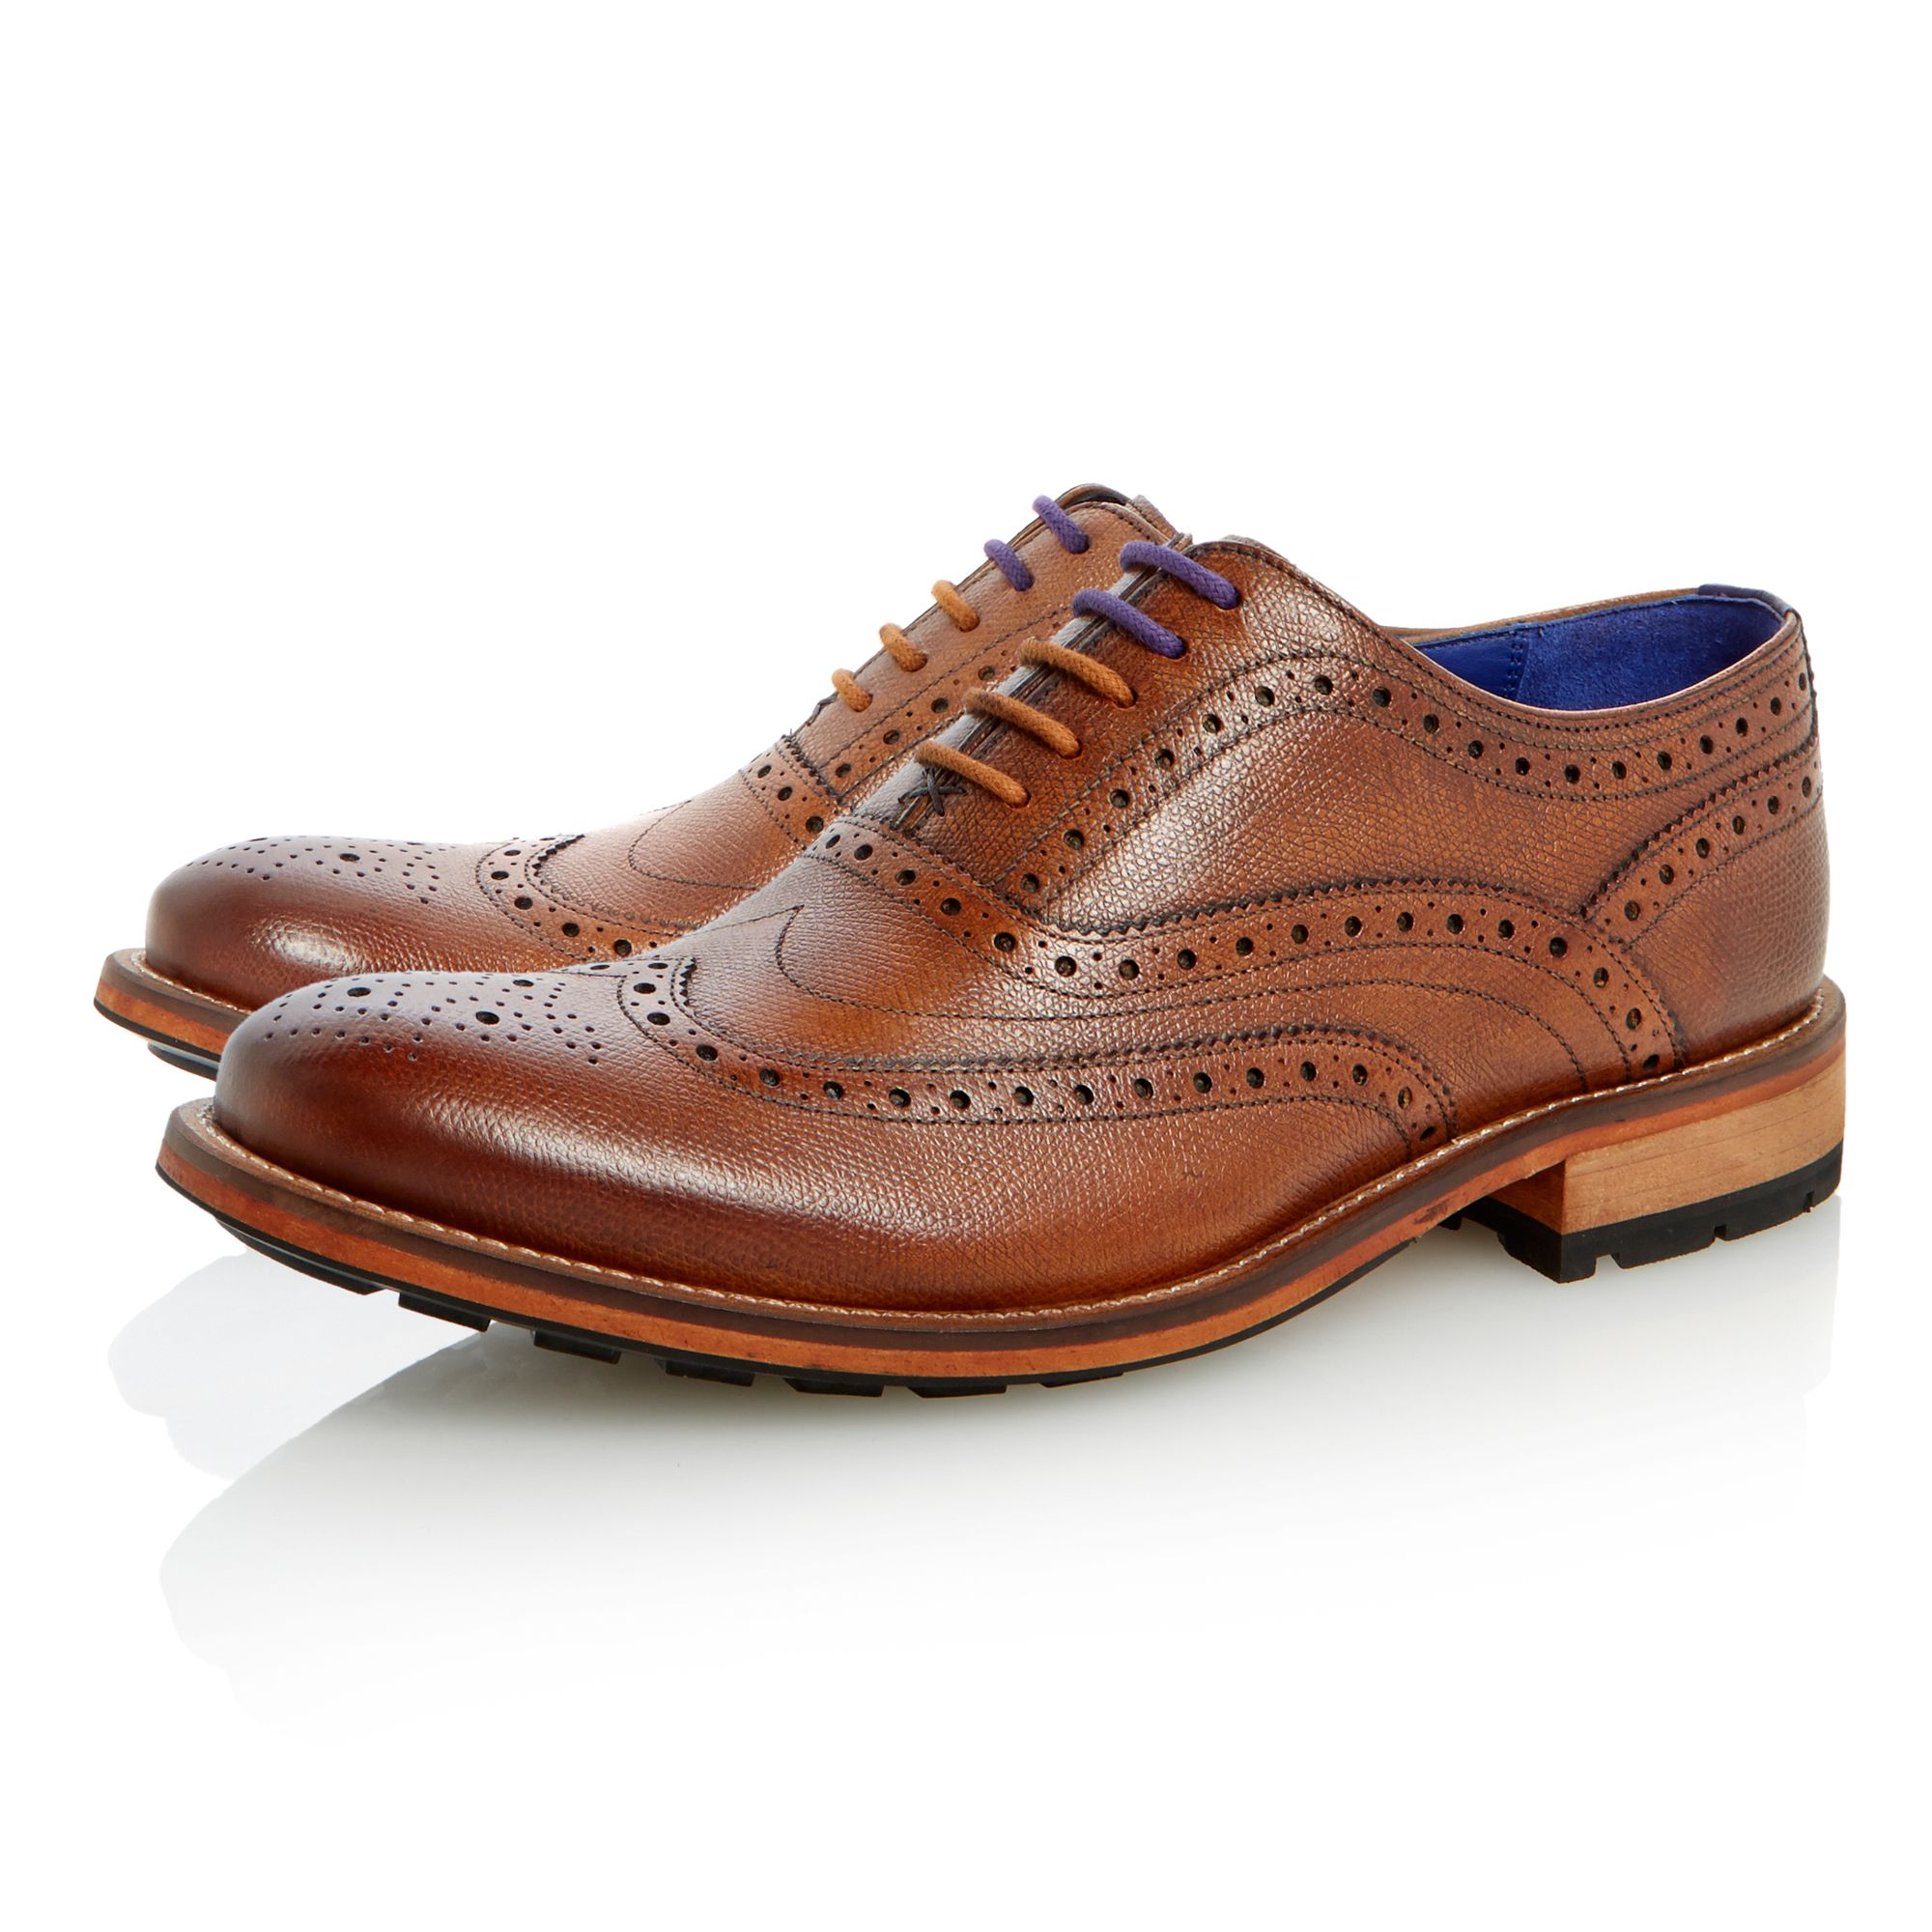 Guri 7 traditional lace up formal brogue